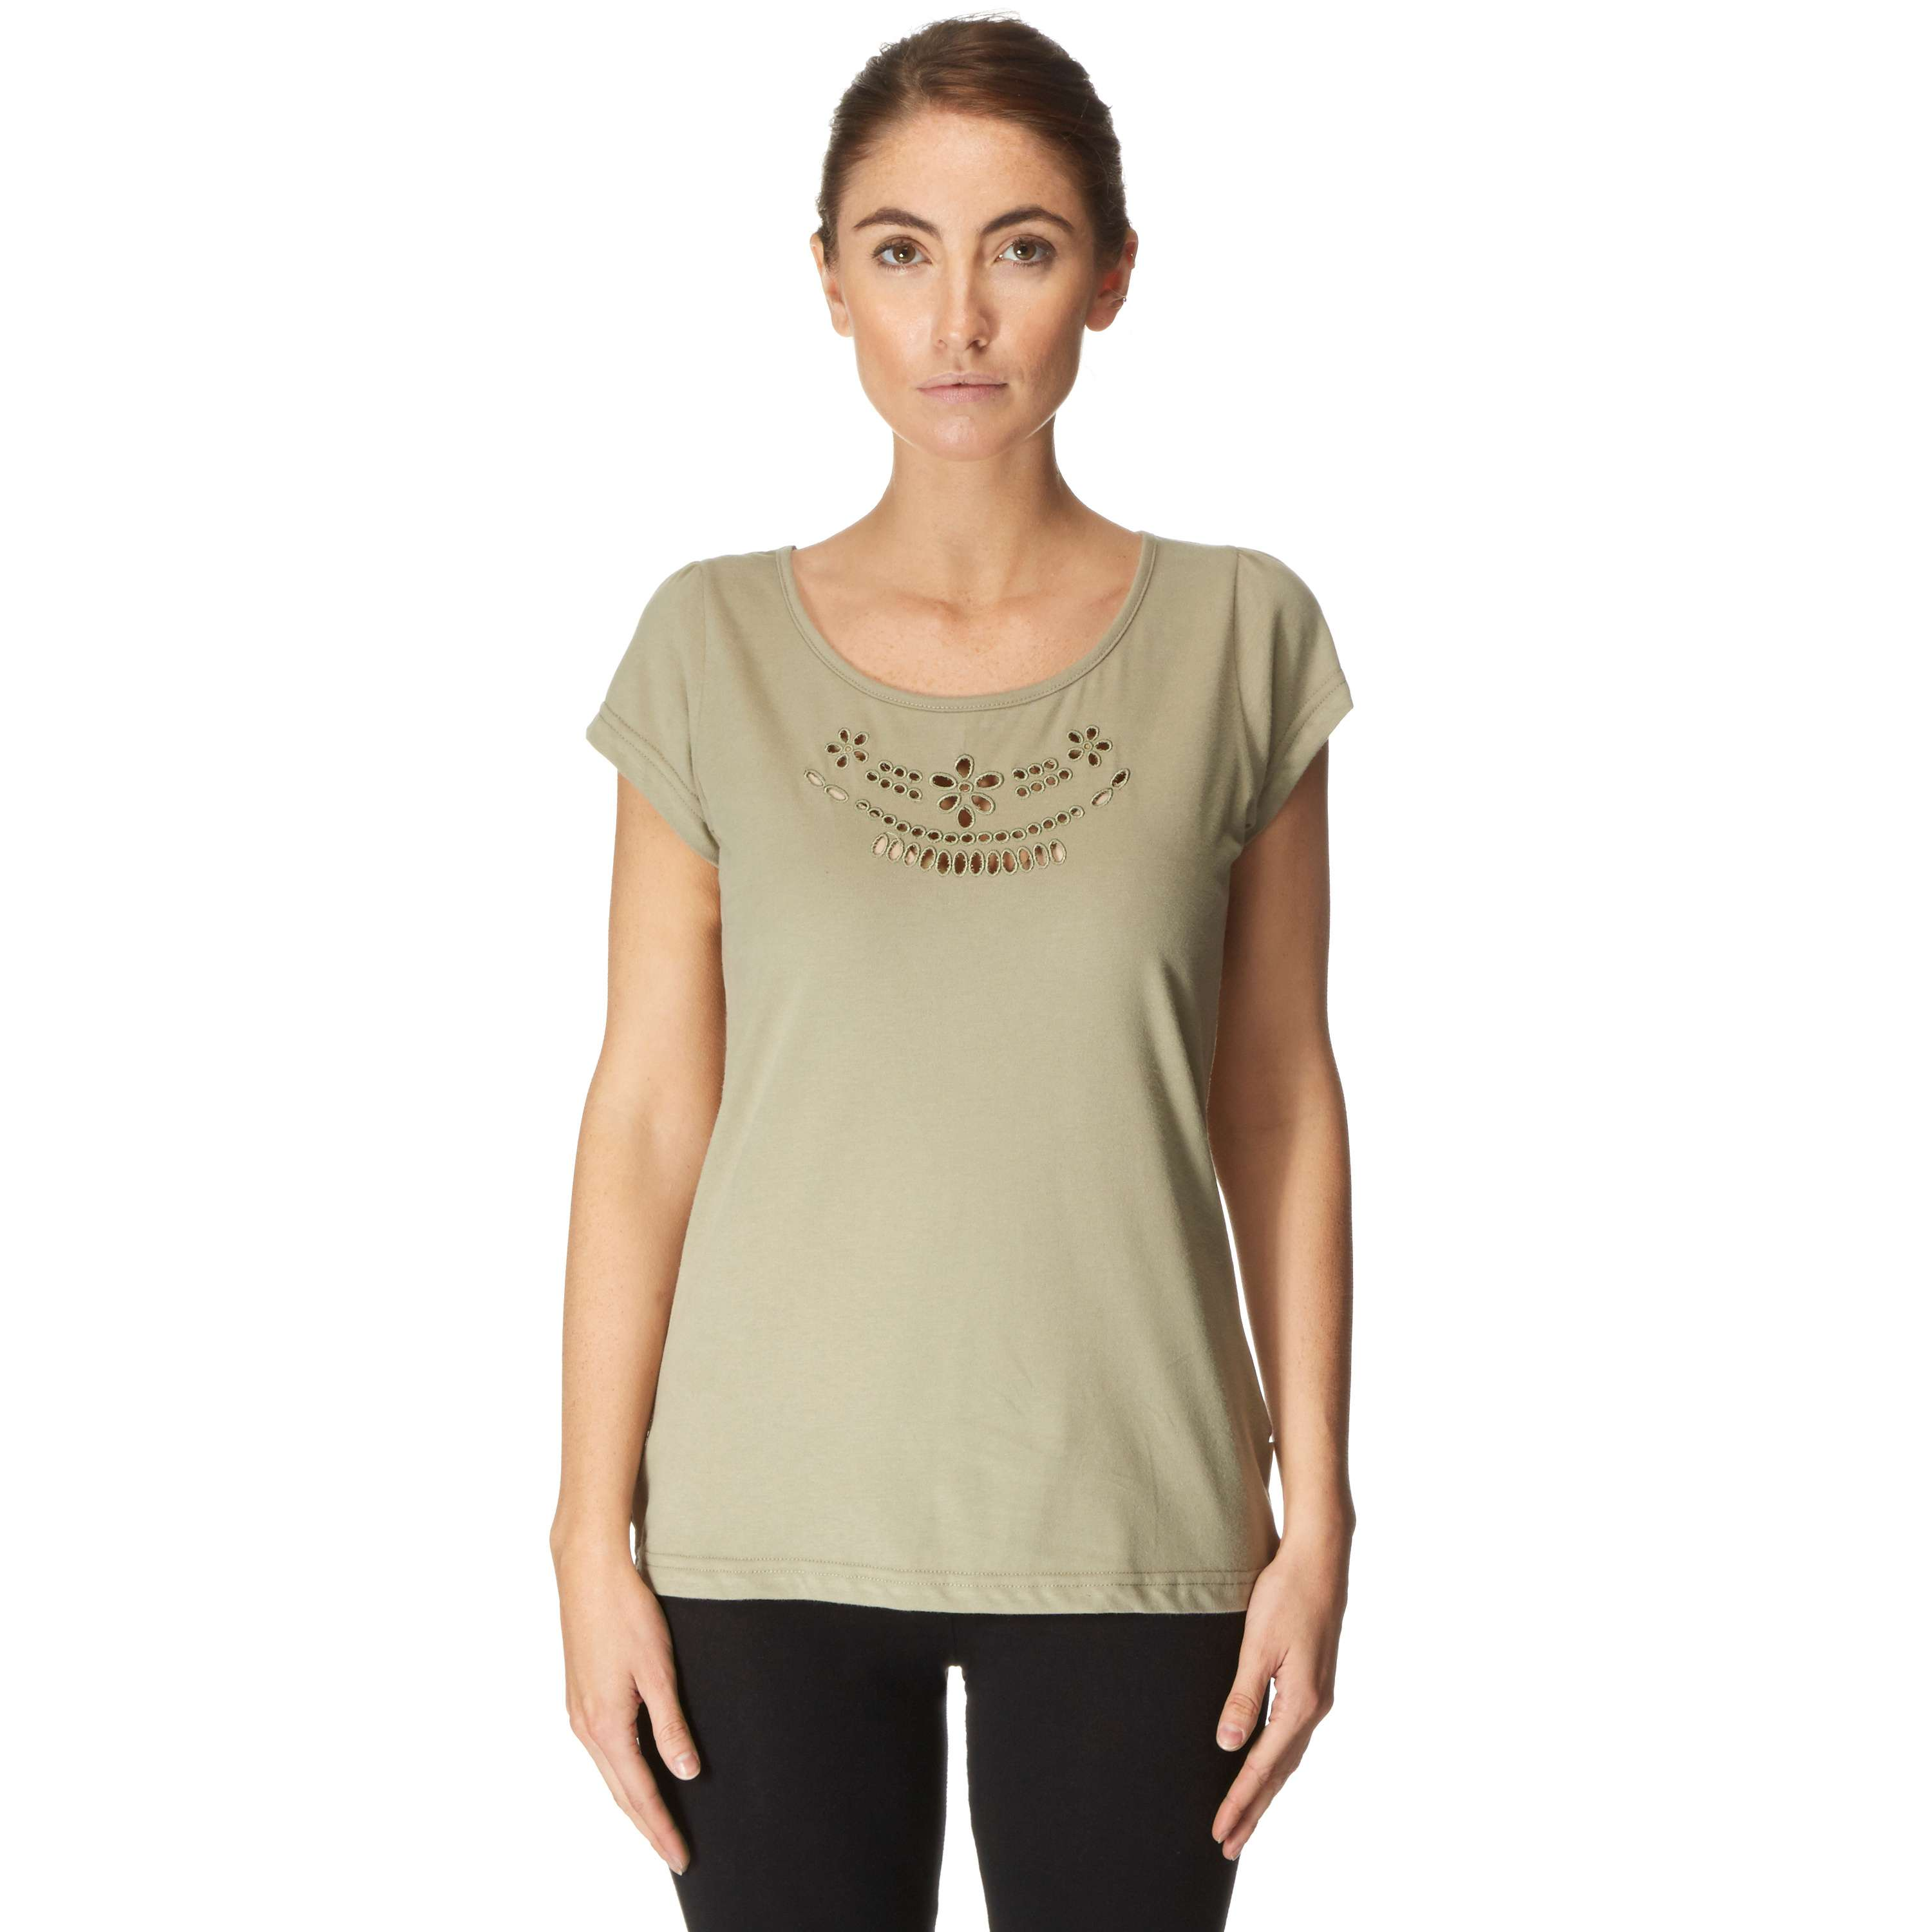 ONE EARTH Women's Cut-Out T-Shirt